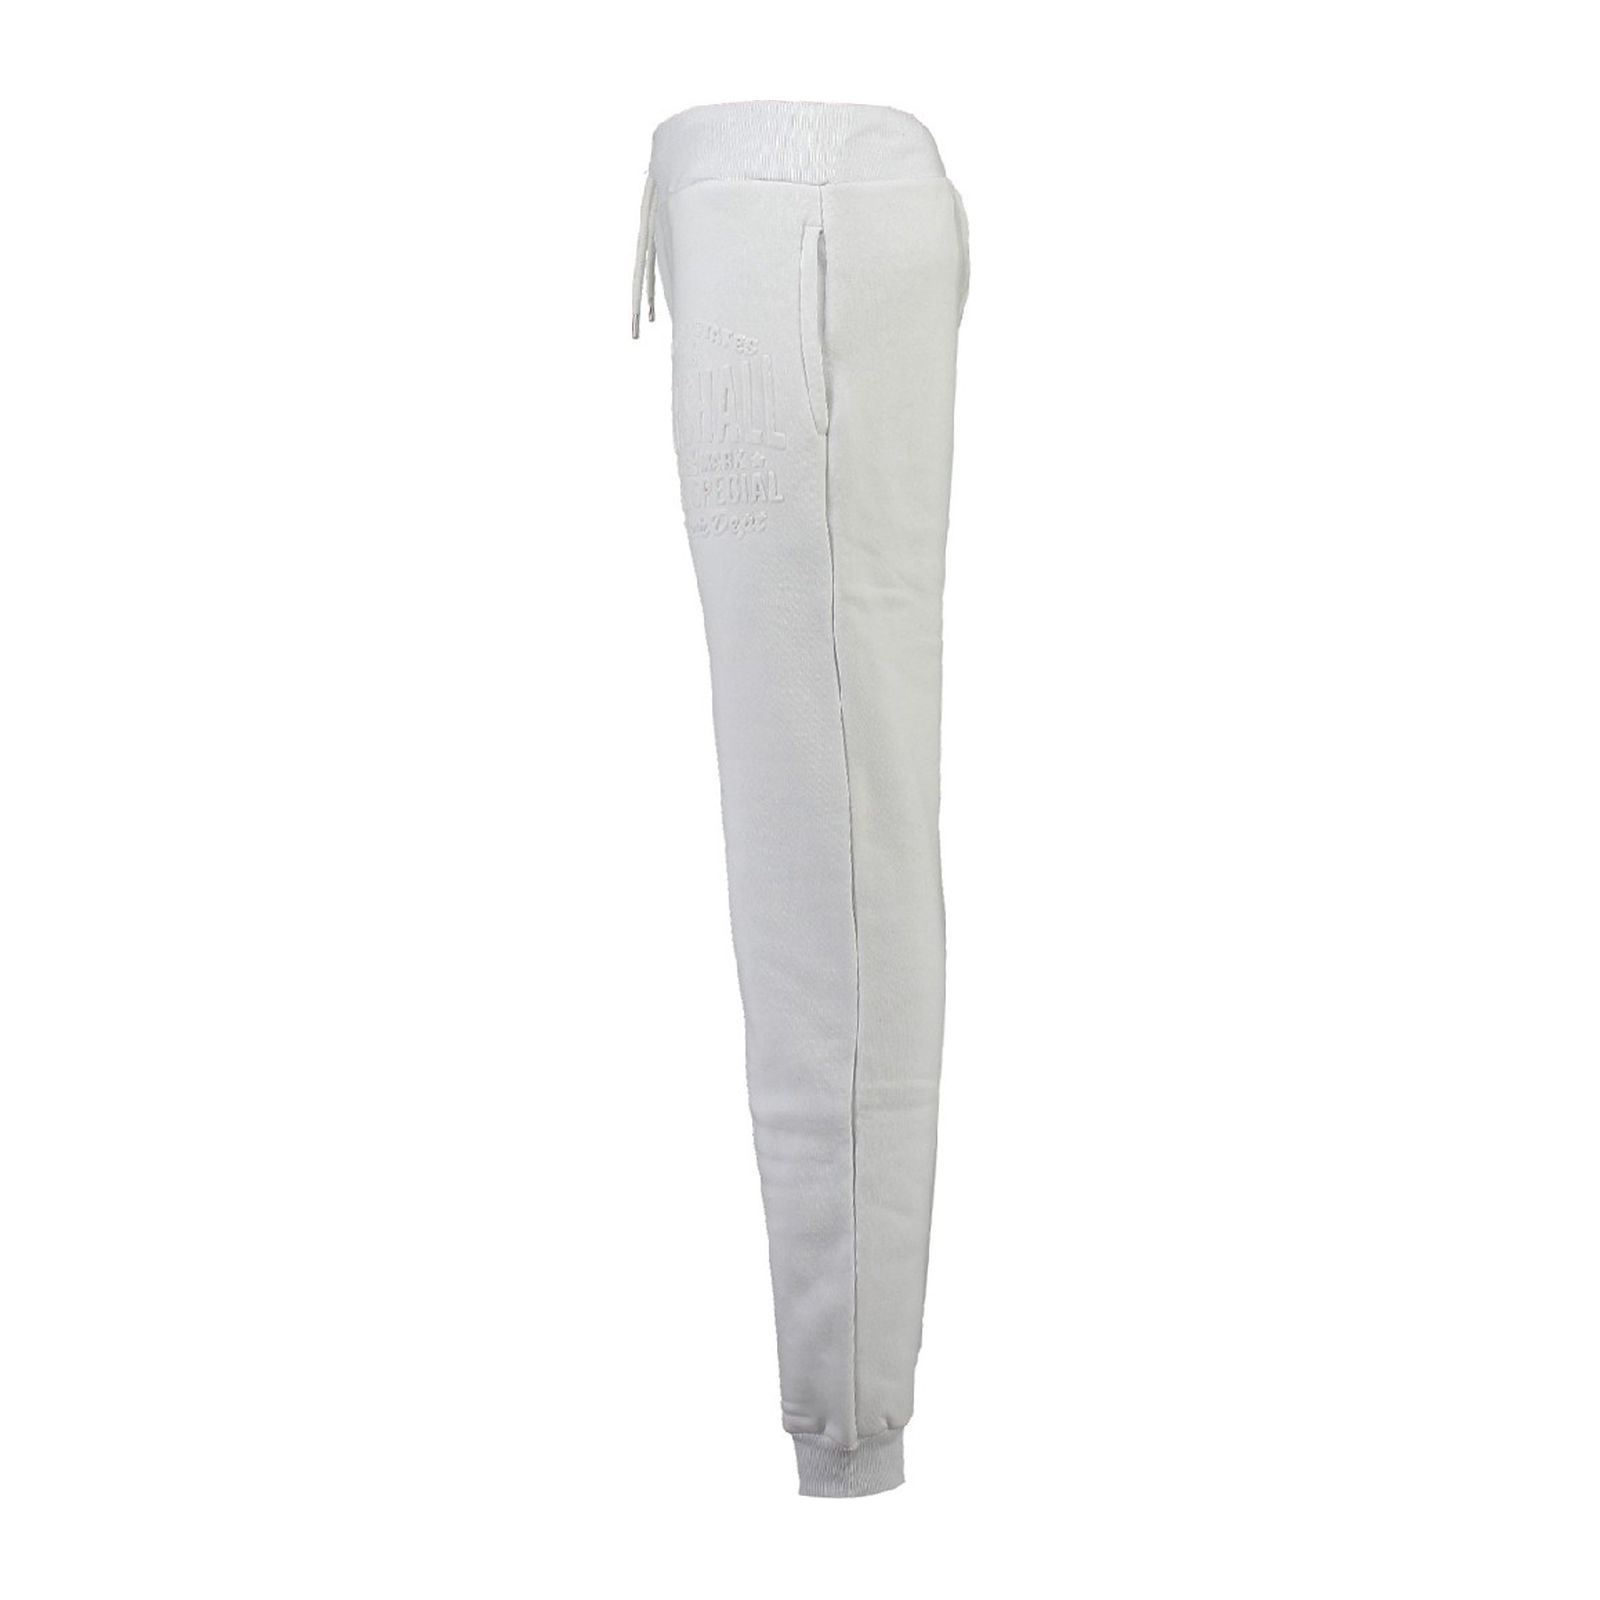 Marshall Jogging Pantalon Munishall Us Blanc PqxwdnX